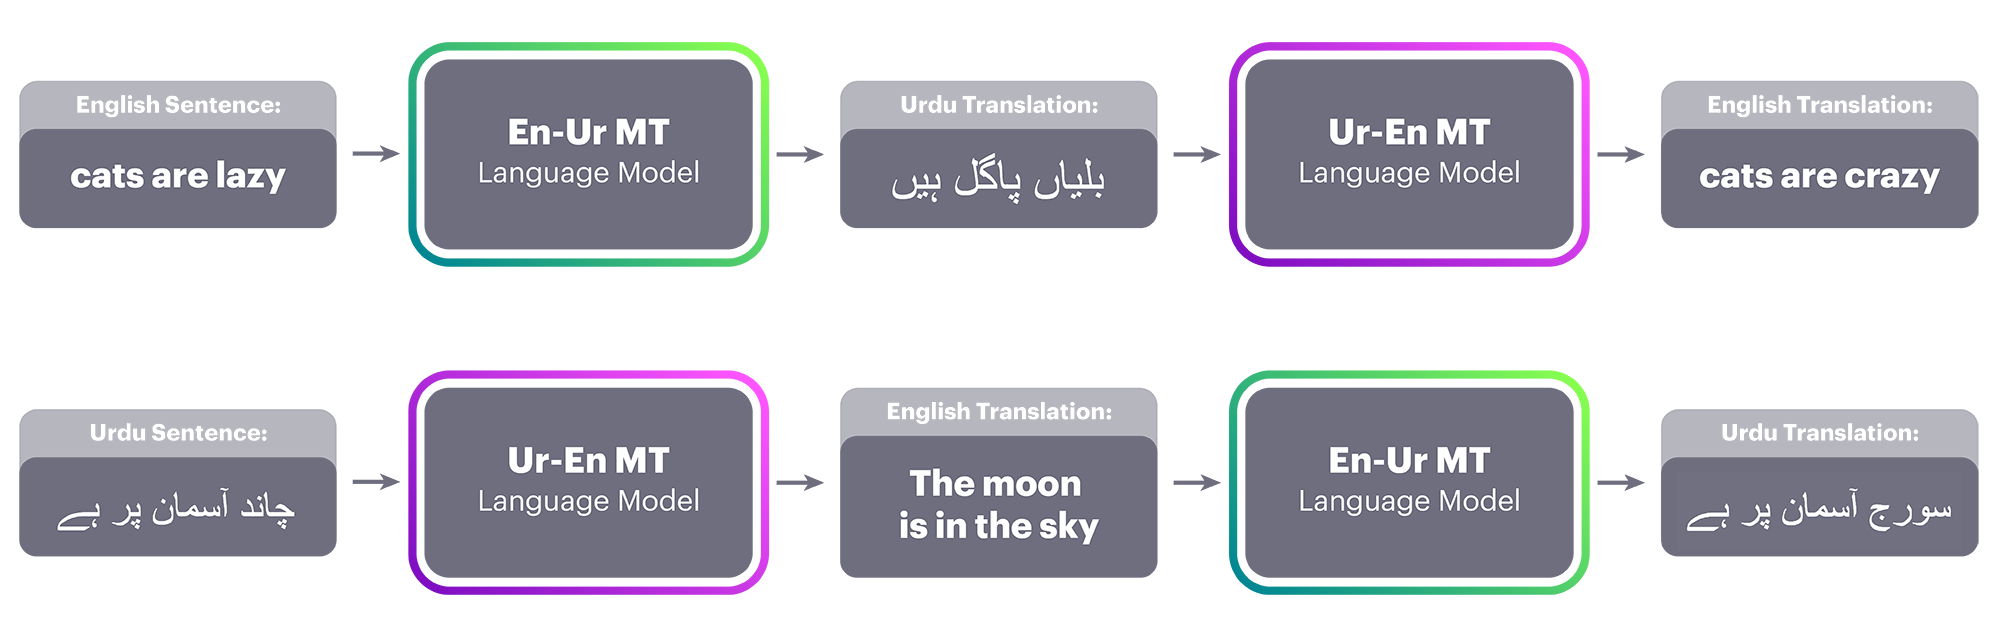 "Top: a sentence in English is translated to Urdu using the current En-Ur MT system. Next, the Ur-En MT system takes that Urdu translation as input and produces the English translation. The error between ""cats are crazy"" and ""cats are lazy"" is used to change the parameters such that the Ur-En MT system is more likely to output the correct sentence at the next iteration. Bottom: The same process in reverse, using the Ur-En MT system to provide data for the En-Ur MT system."